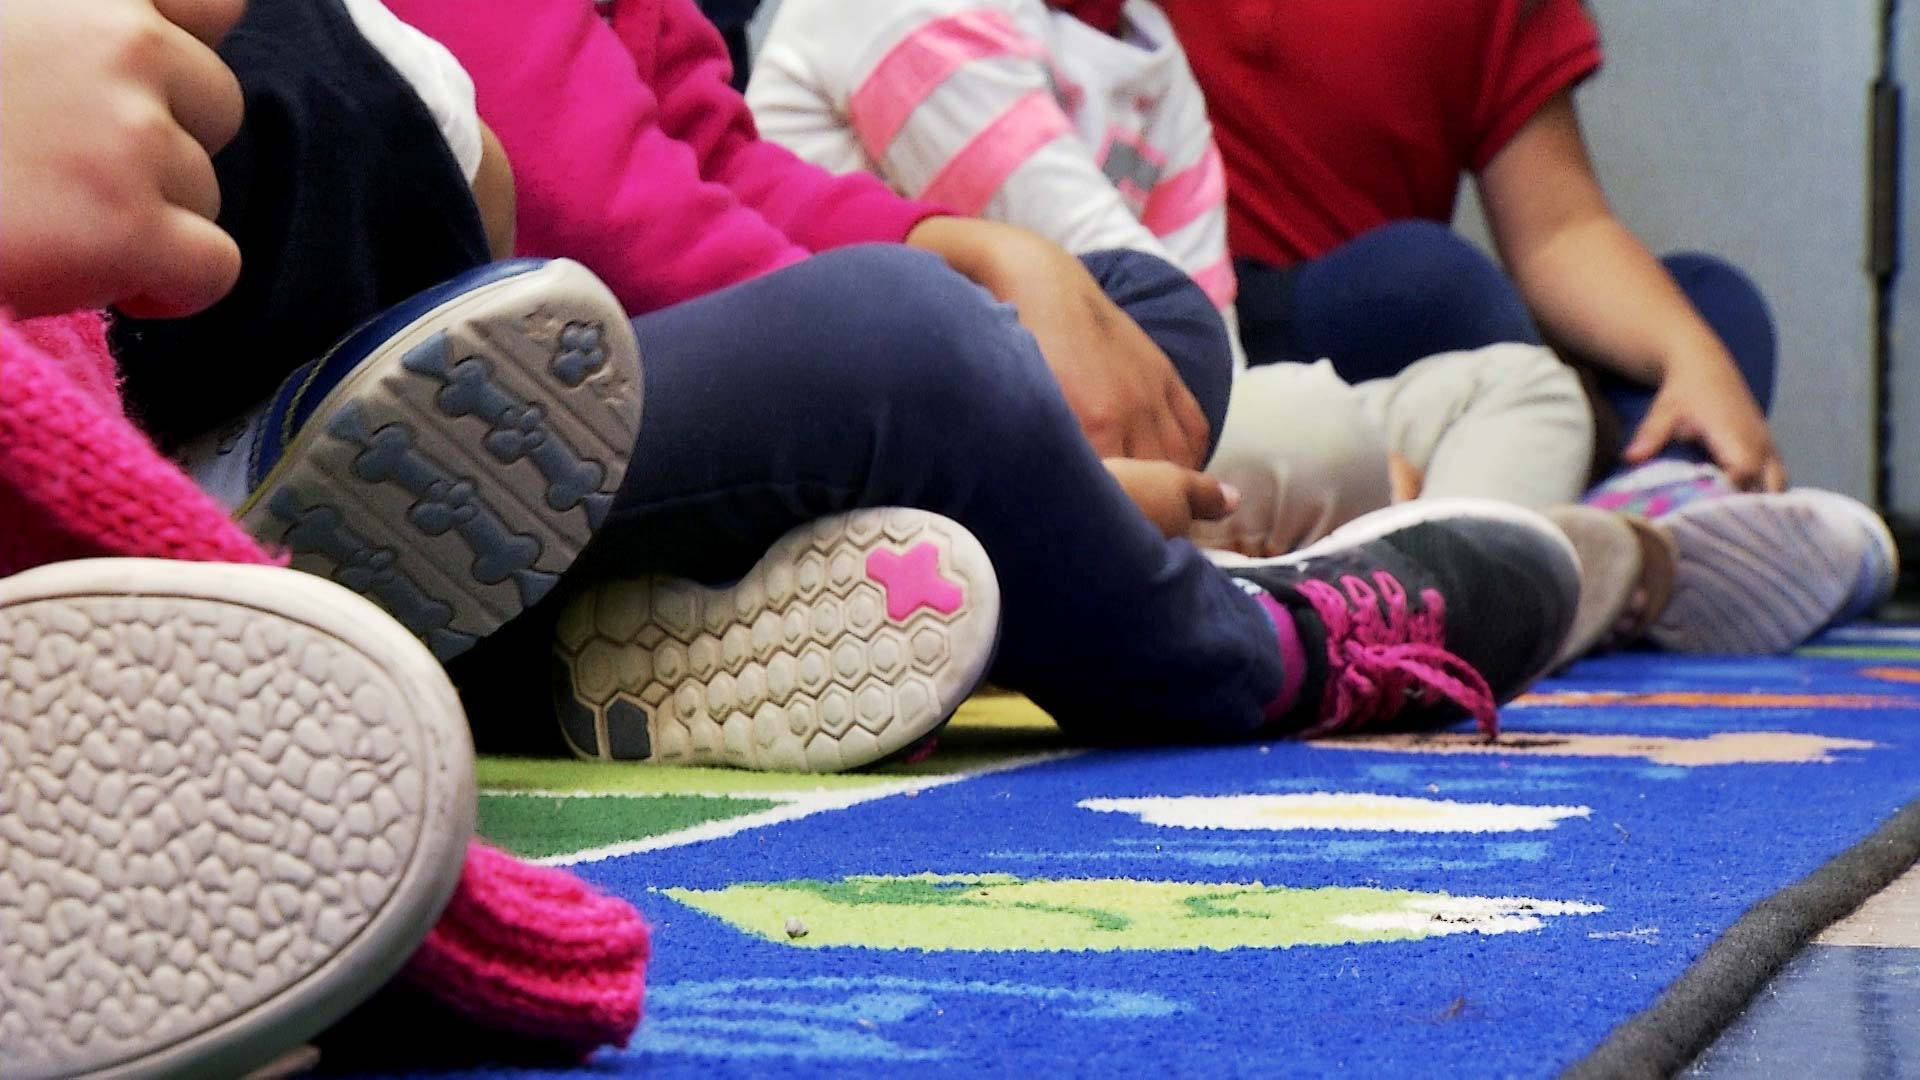 The shoes of children as they sit in a row inside a kindergarten classroom.